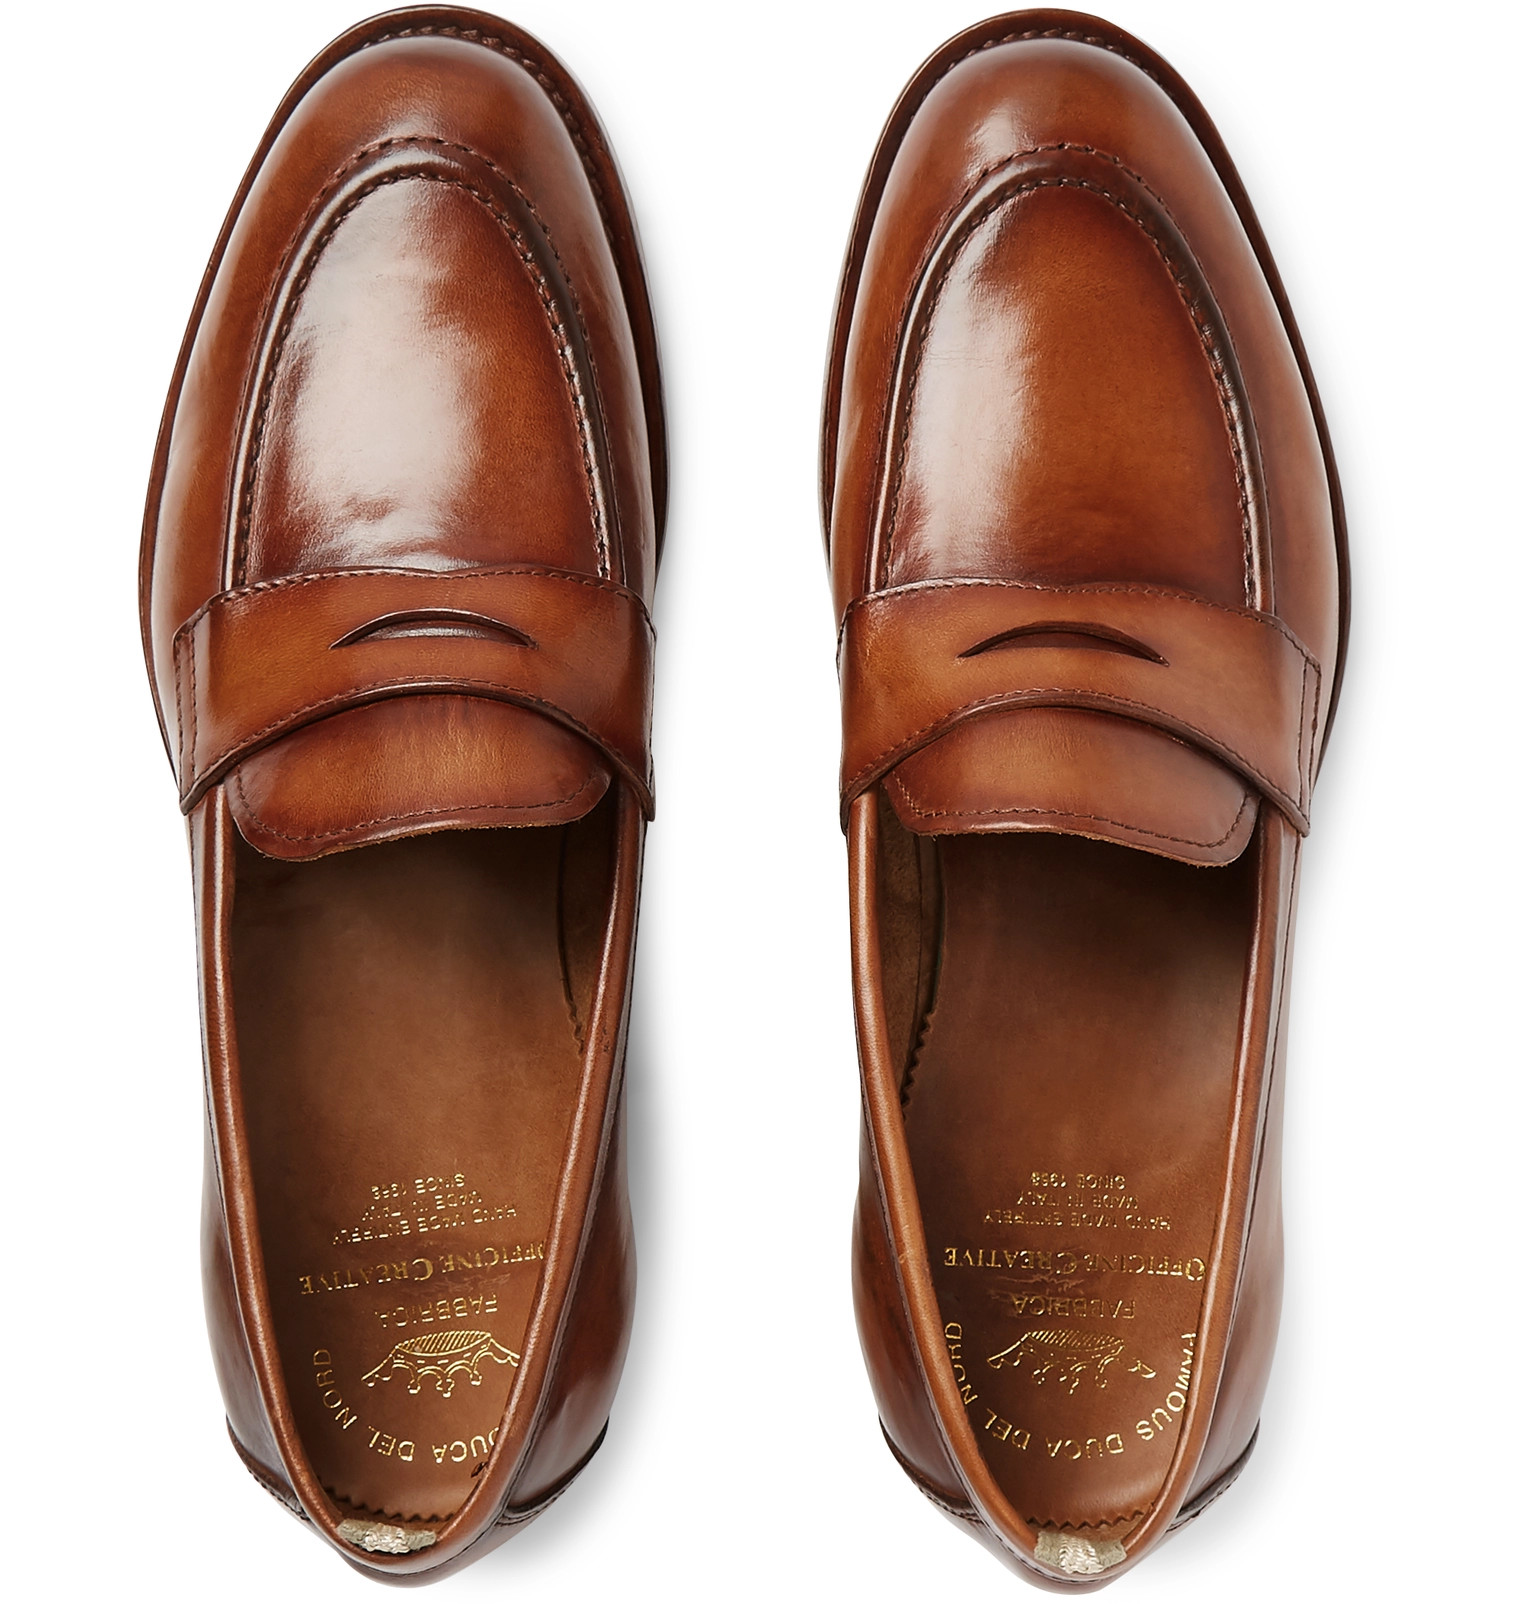 7f58918a0d7 Officine CreativeIvy Polished-Leather Penny Loafers. £435.05   Approx.  ₩651